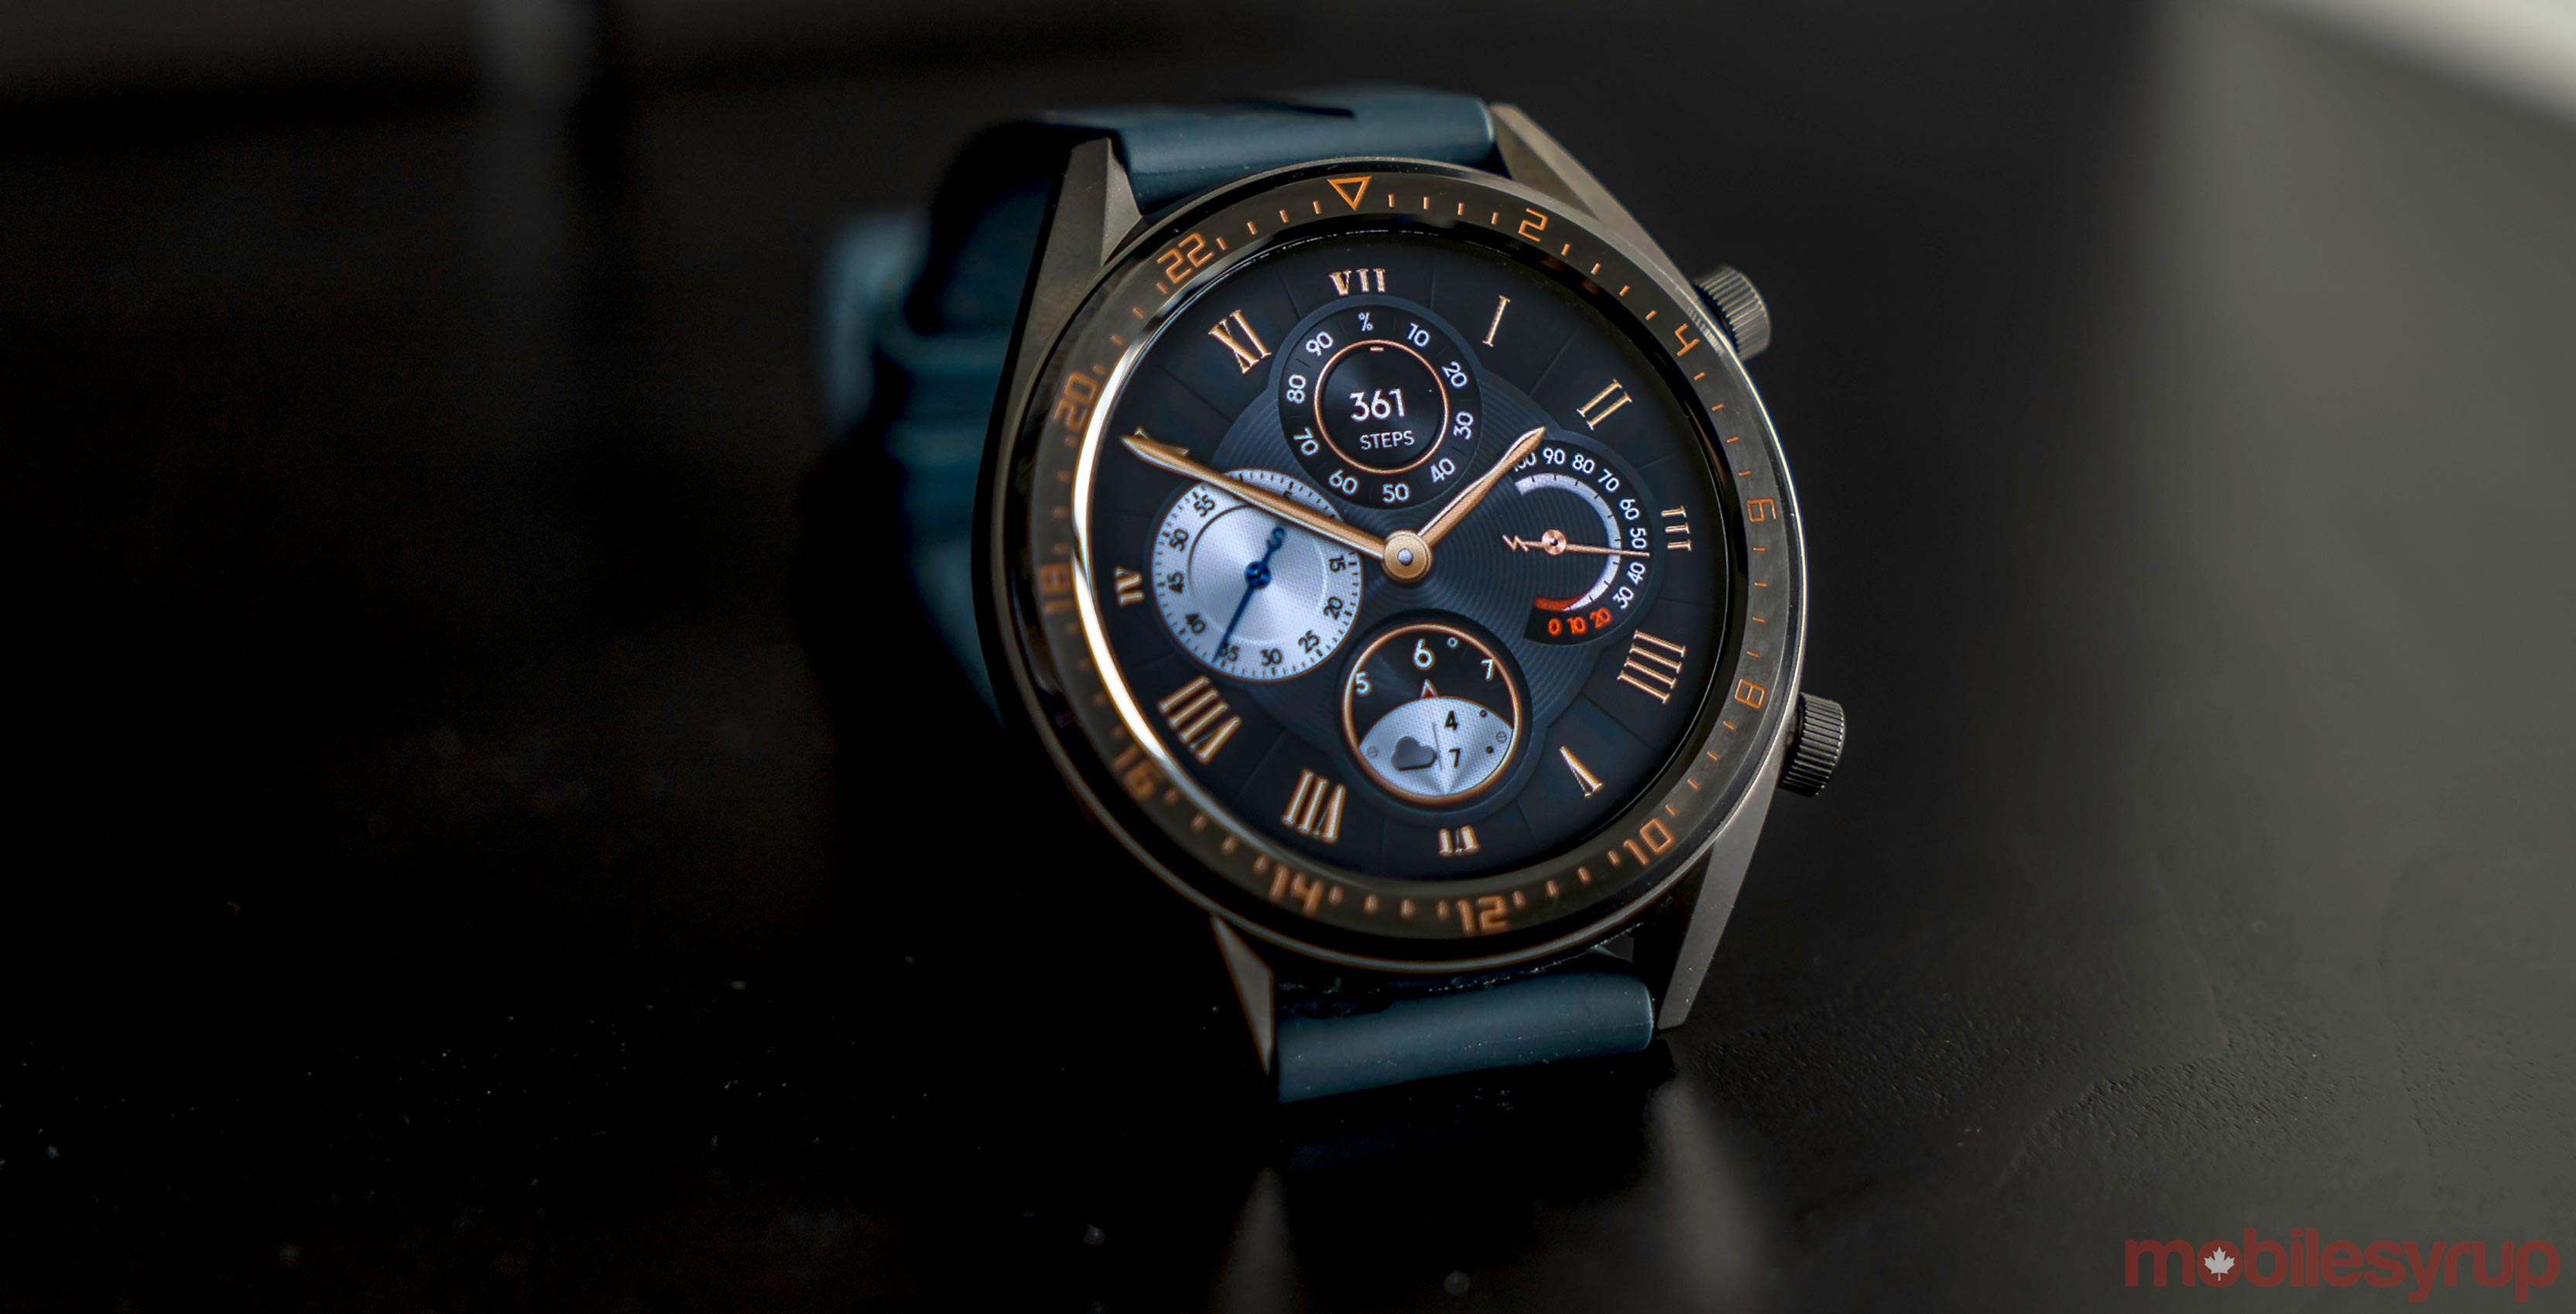 Huawei Watch GT Review: Show me the apps